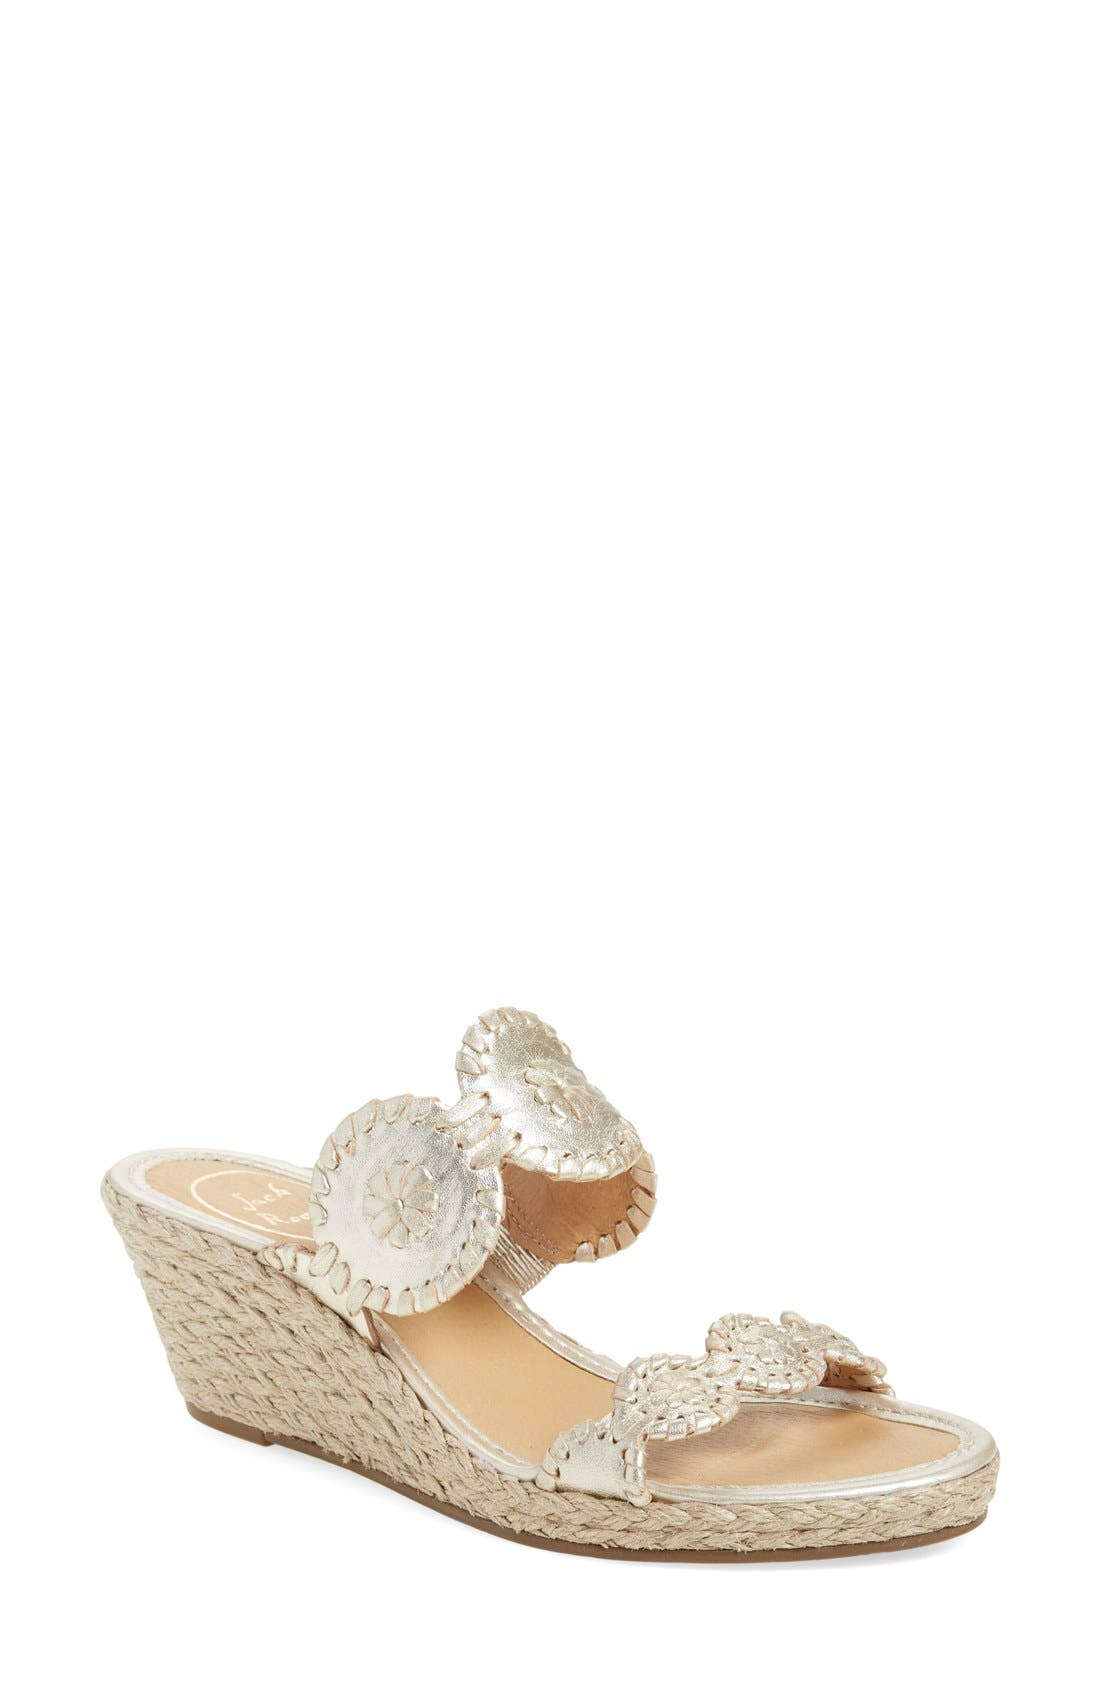 'Shelby' Whipstitched Wedge Sandal,                         Main,                         color, PLATINUM